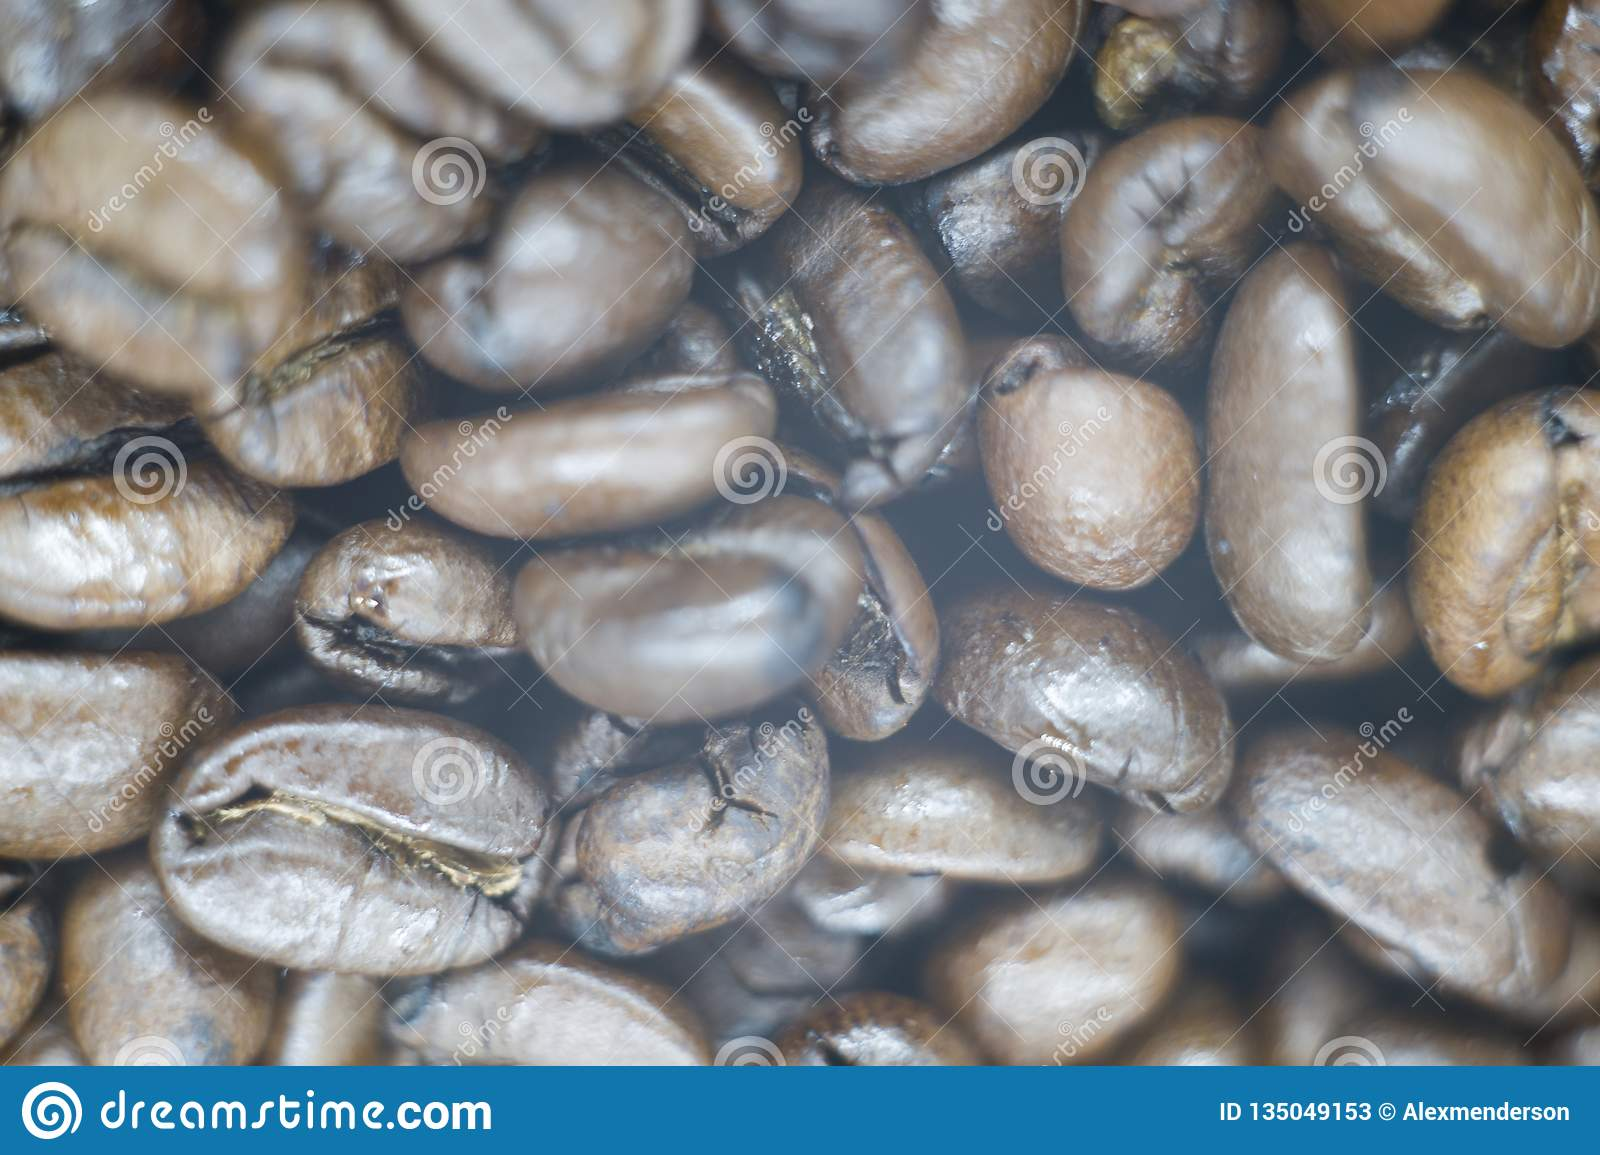 A picture of a fresh coffee beans